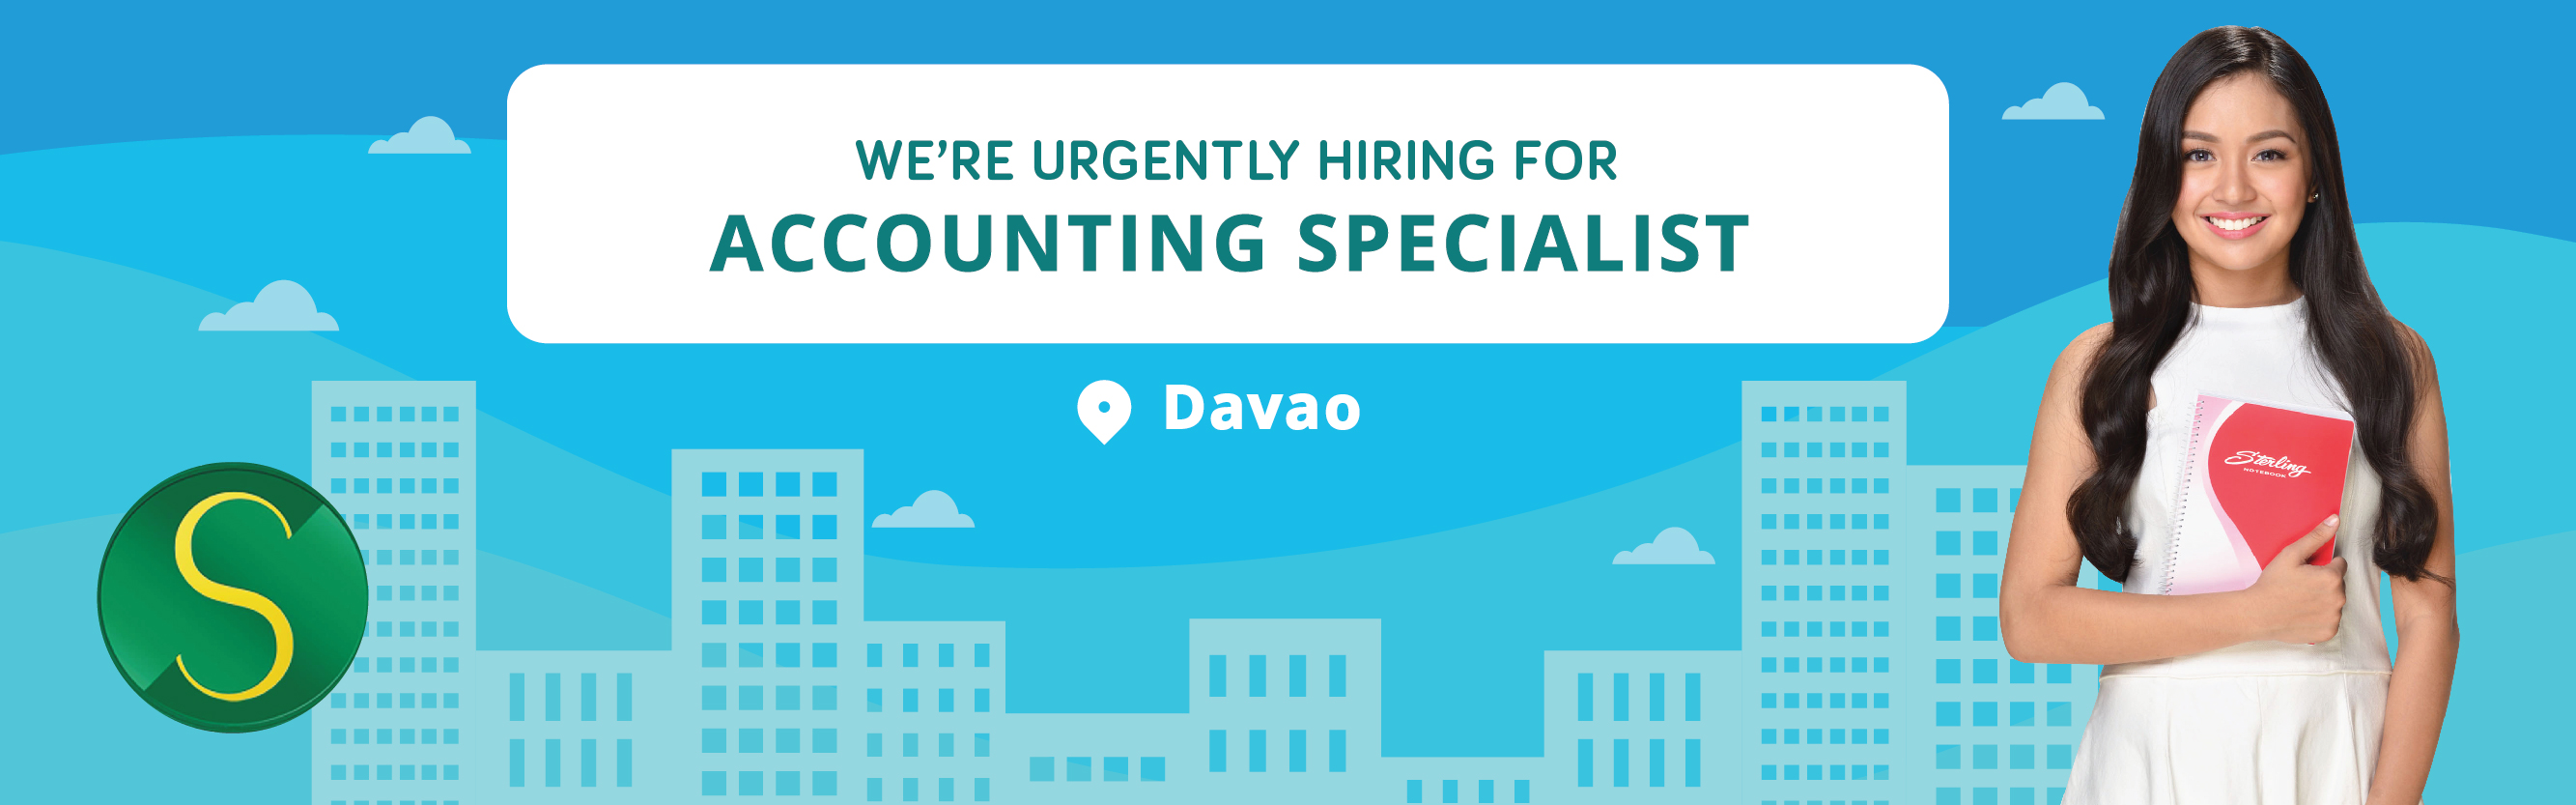 Accounting Specialist (davao Based) from Sterling Paper Group of Com...